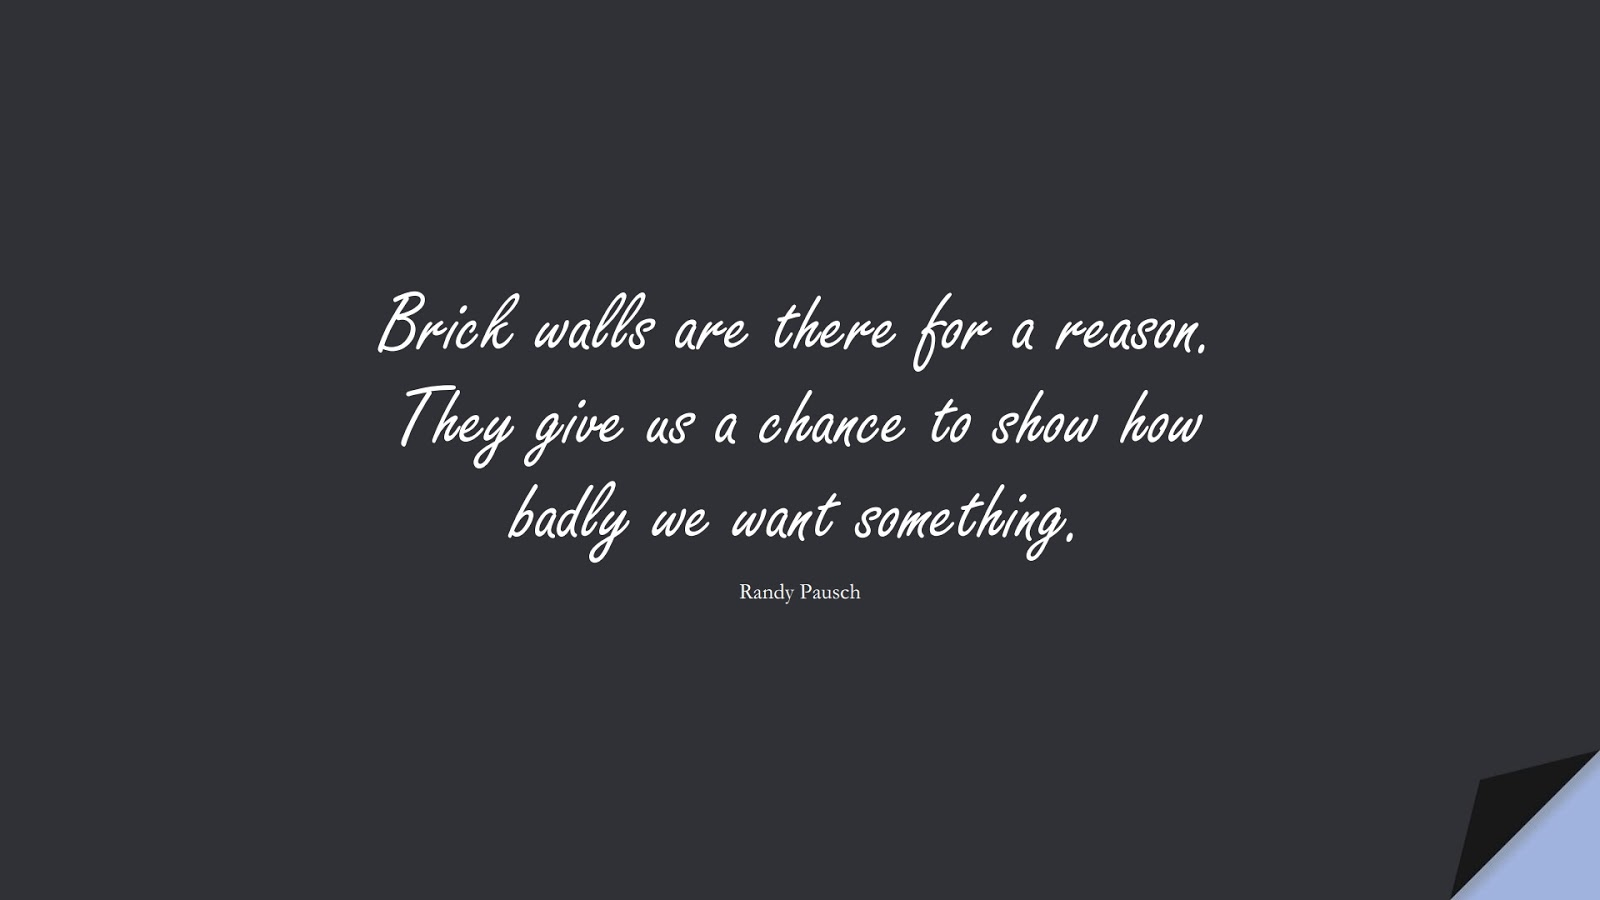 Brick walls are there for a reason. They give us a chance to show how badly we want something. (Randy Pausch);  #NeverGiveUpQuotes